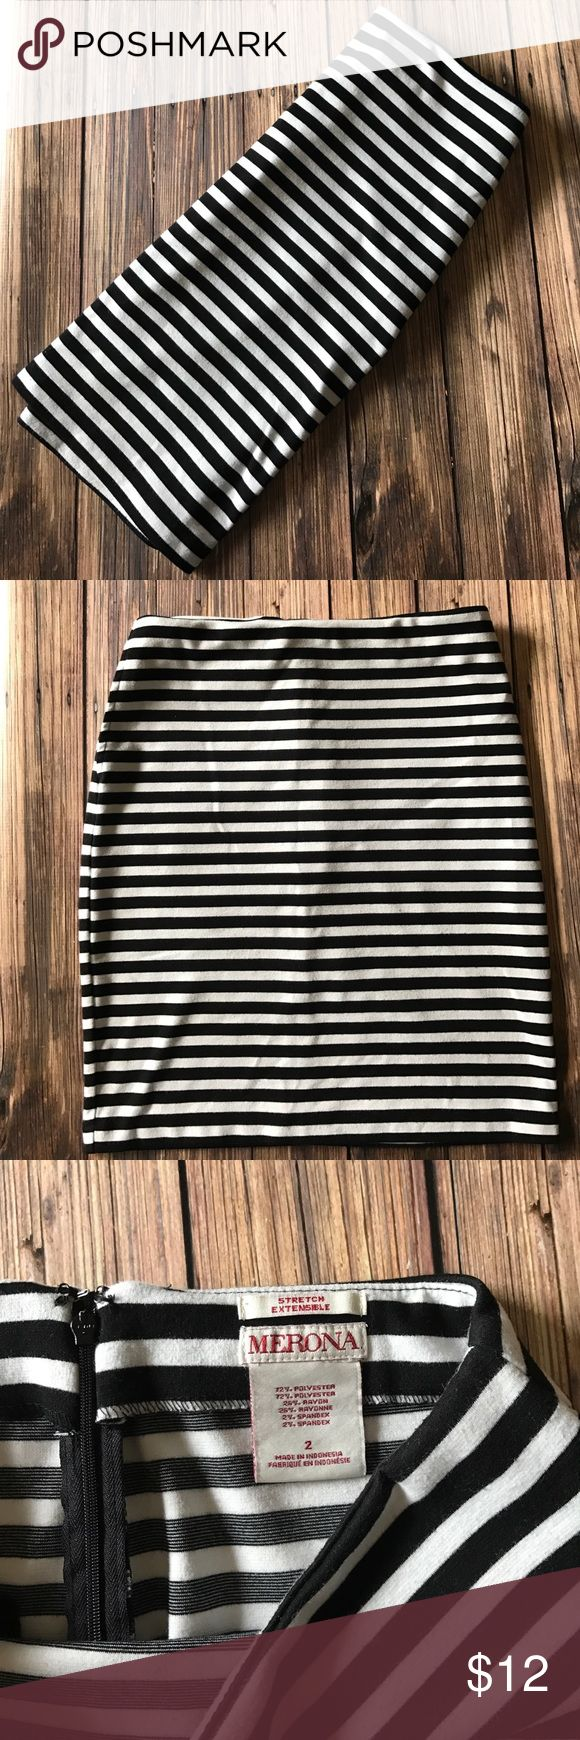 Merona Black & White Stripe Pencil Skirt Pockets 2 Merona black and white striped pencil skirt with pockets. Zippered back with hook & eye. No pilling. Seam has come undone on the inside waistband but it does not affect the wearability of this skirt! Size 2. Bundle and save! Merona Skirts Pencil